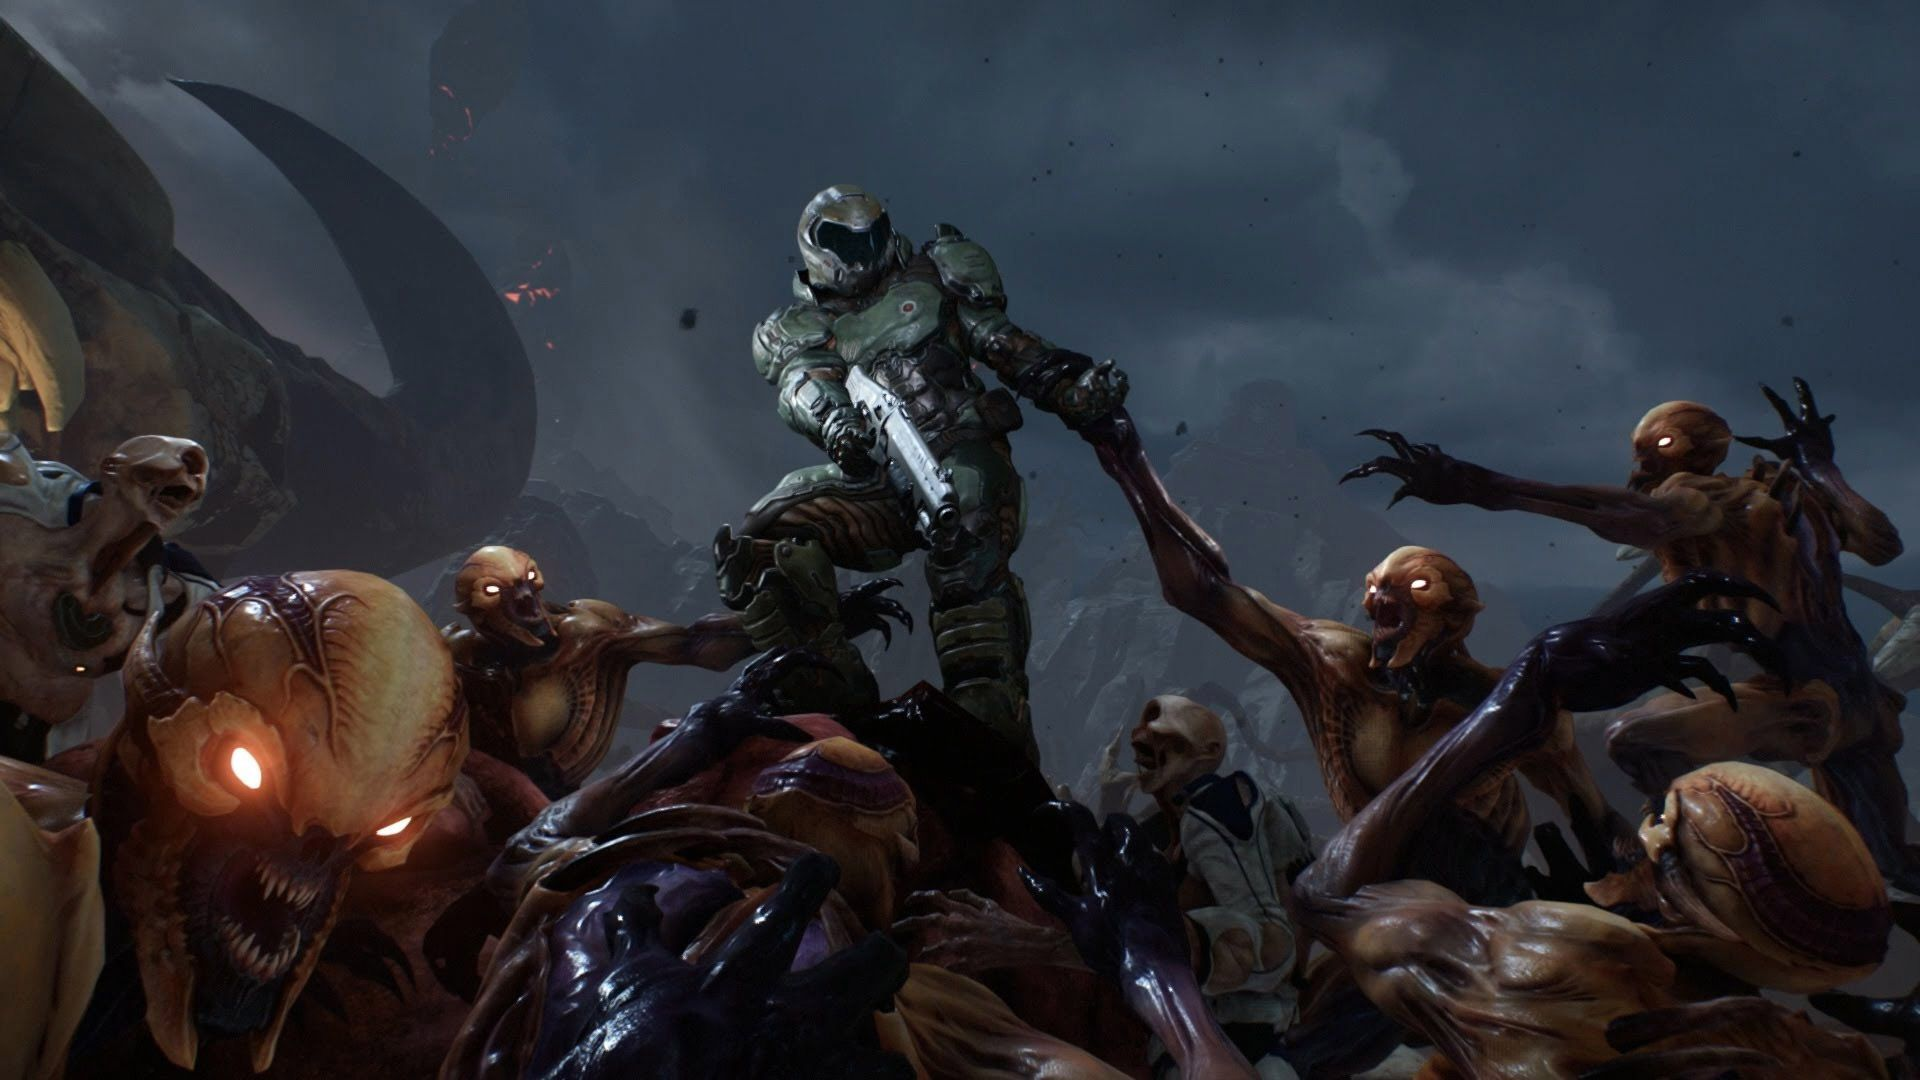 7680 Doom Slayer Wallpapers Top Free 7680 Doom Slayer Backgrounds Wallpaperaccess